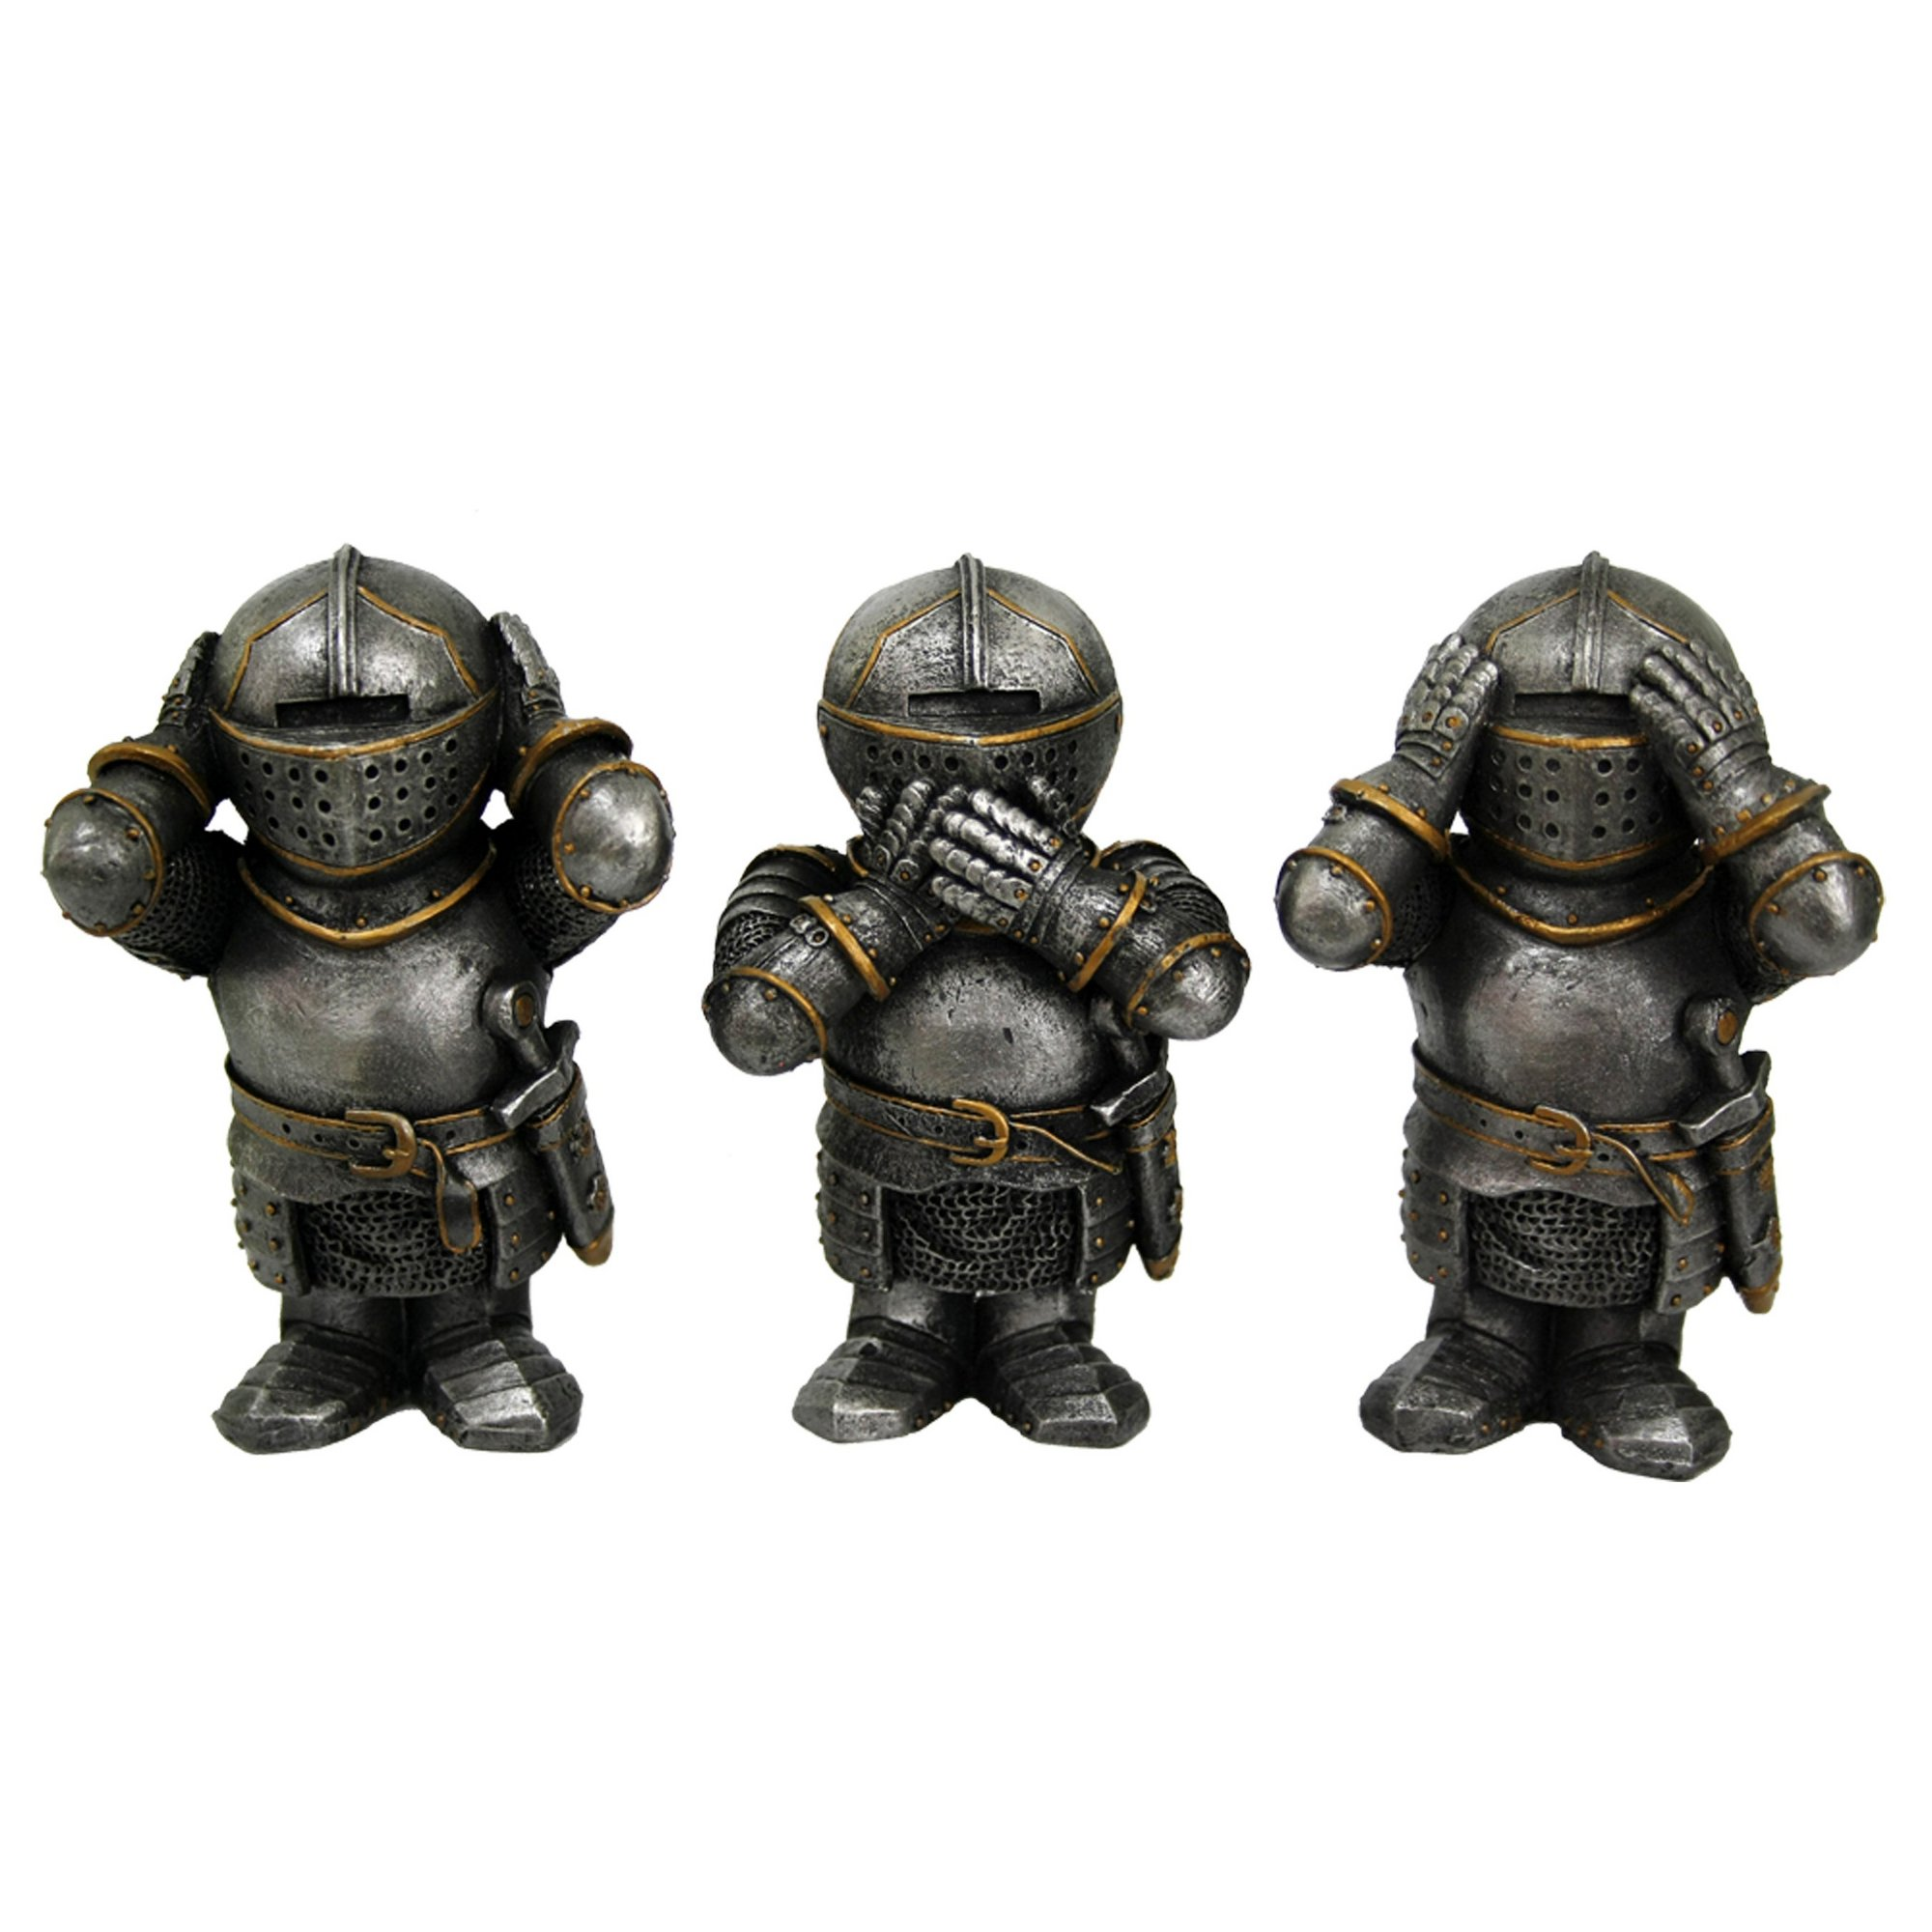 Image of 3 Wise Knights Figurine